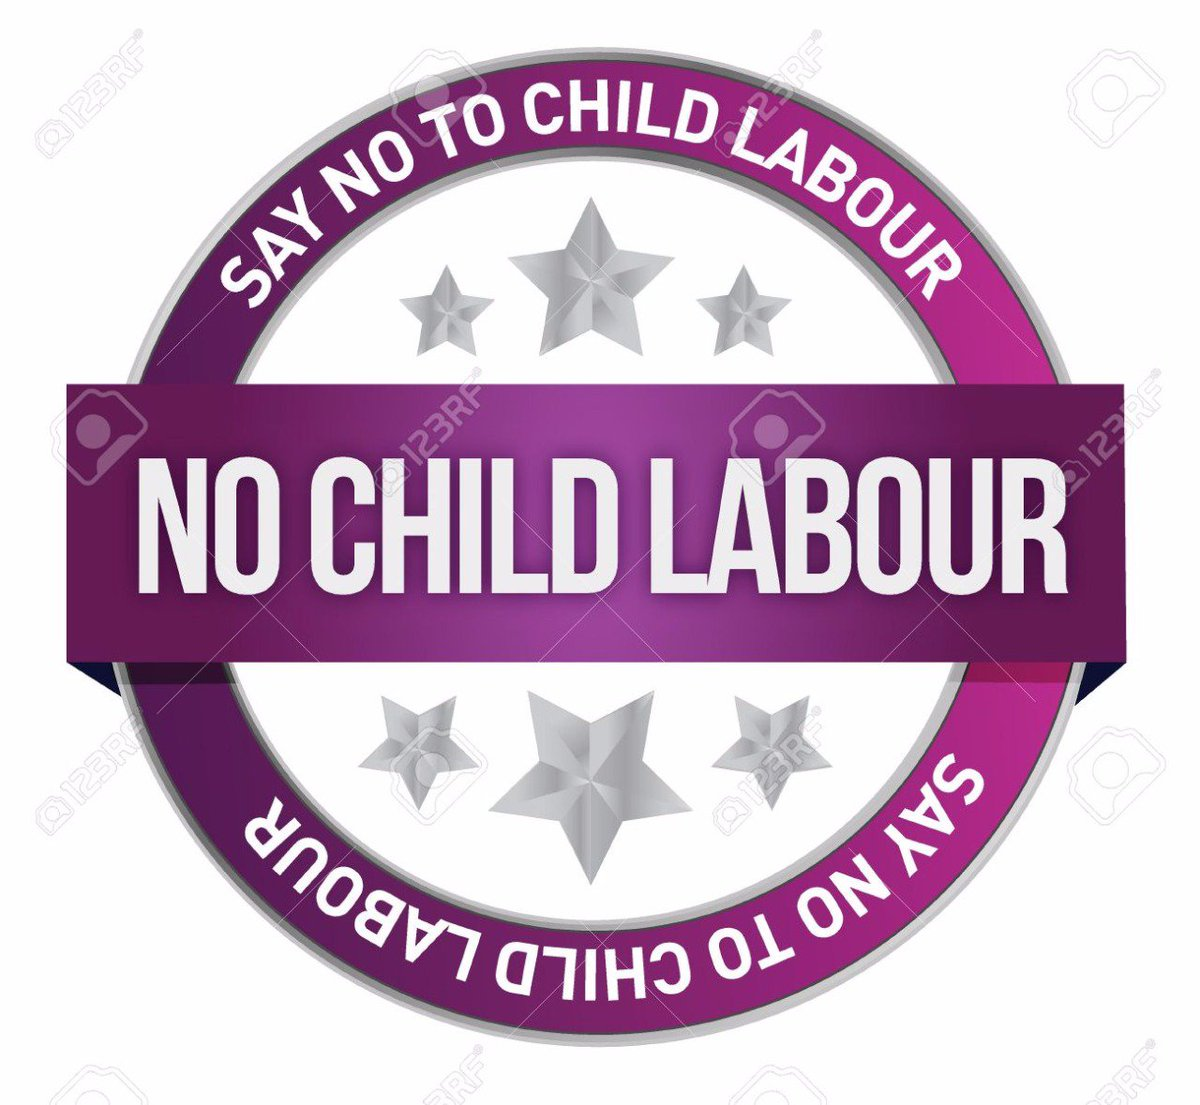 Child labour or child slavery in india is biggest problem that especially  affect underprivileged children. Dera sacha sauda volunteers intensively working to stop this. #MissionSmileByStRamRahim<br>http://pic.twitter.com/nn0FTVqmgP